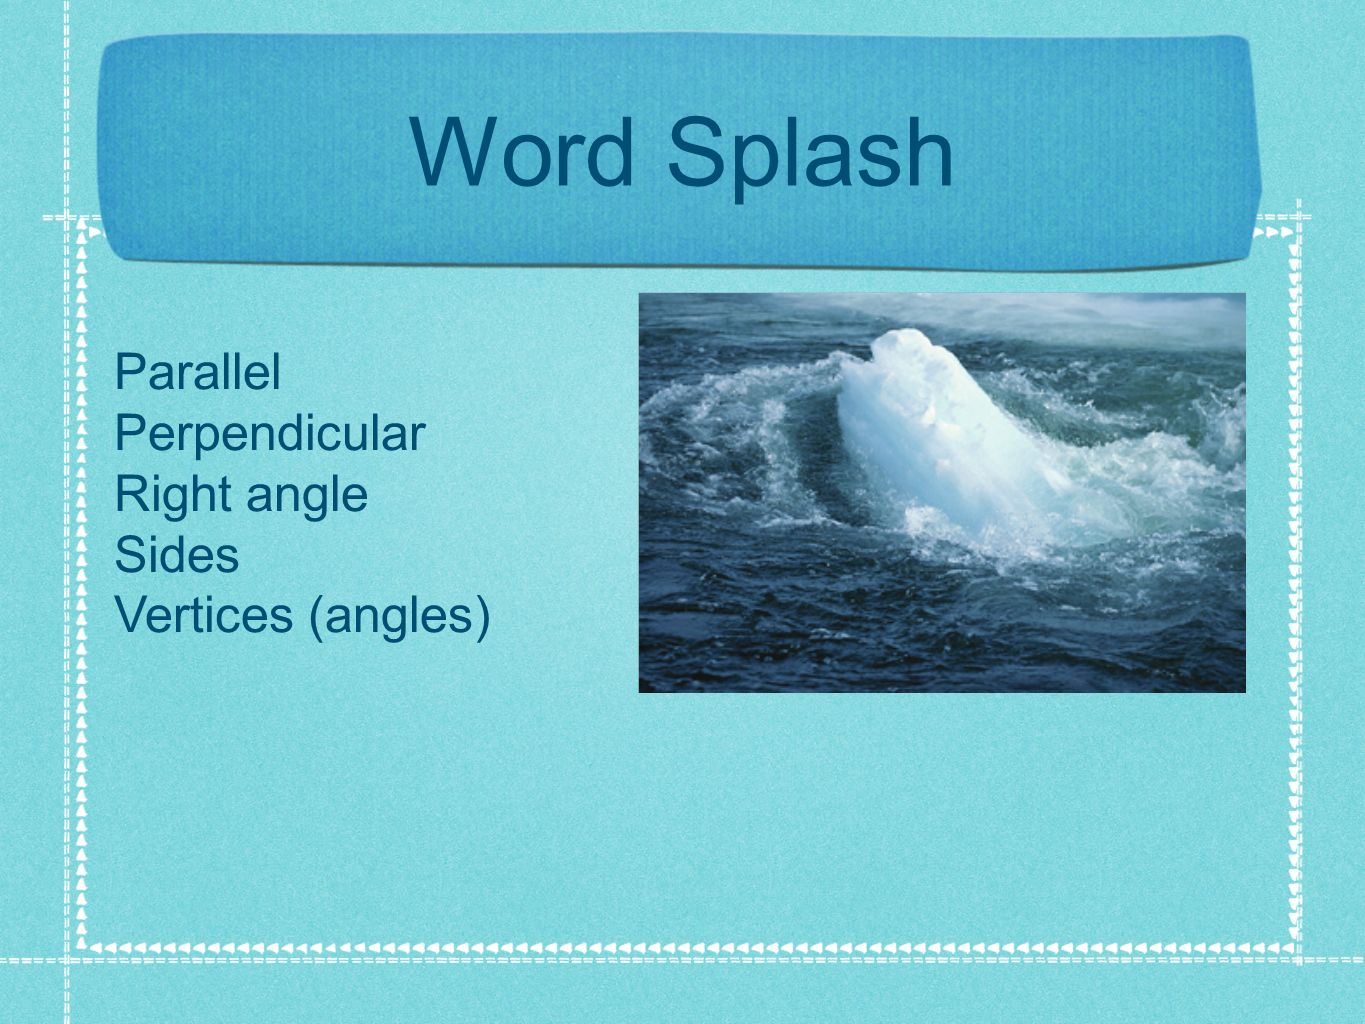 Word Splash Parallel Perpendicular Right angle Sides Vertices (angles)